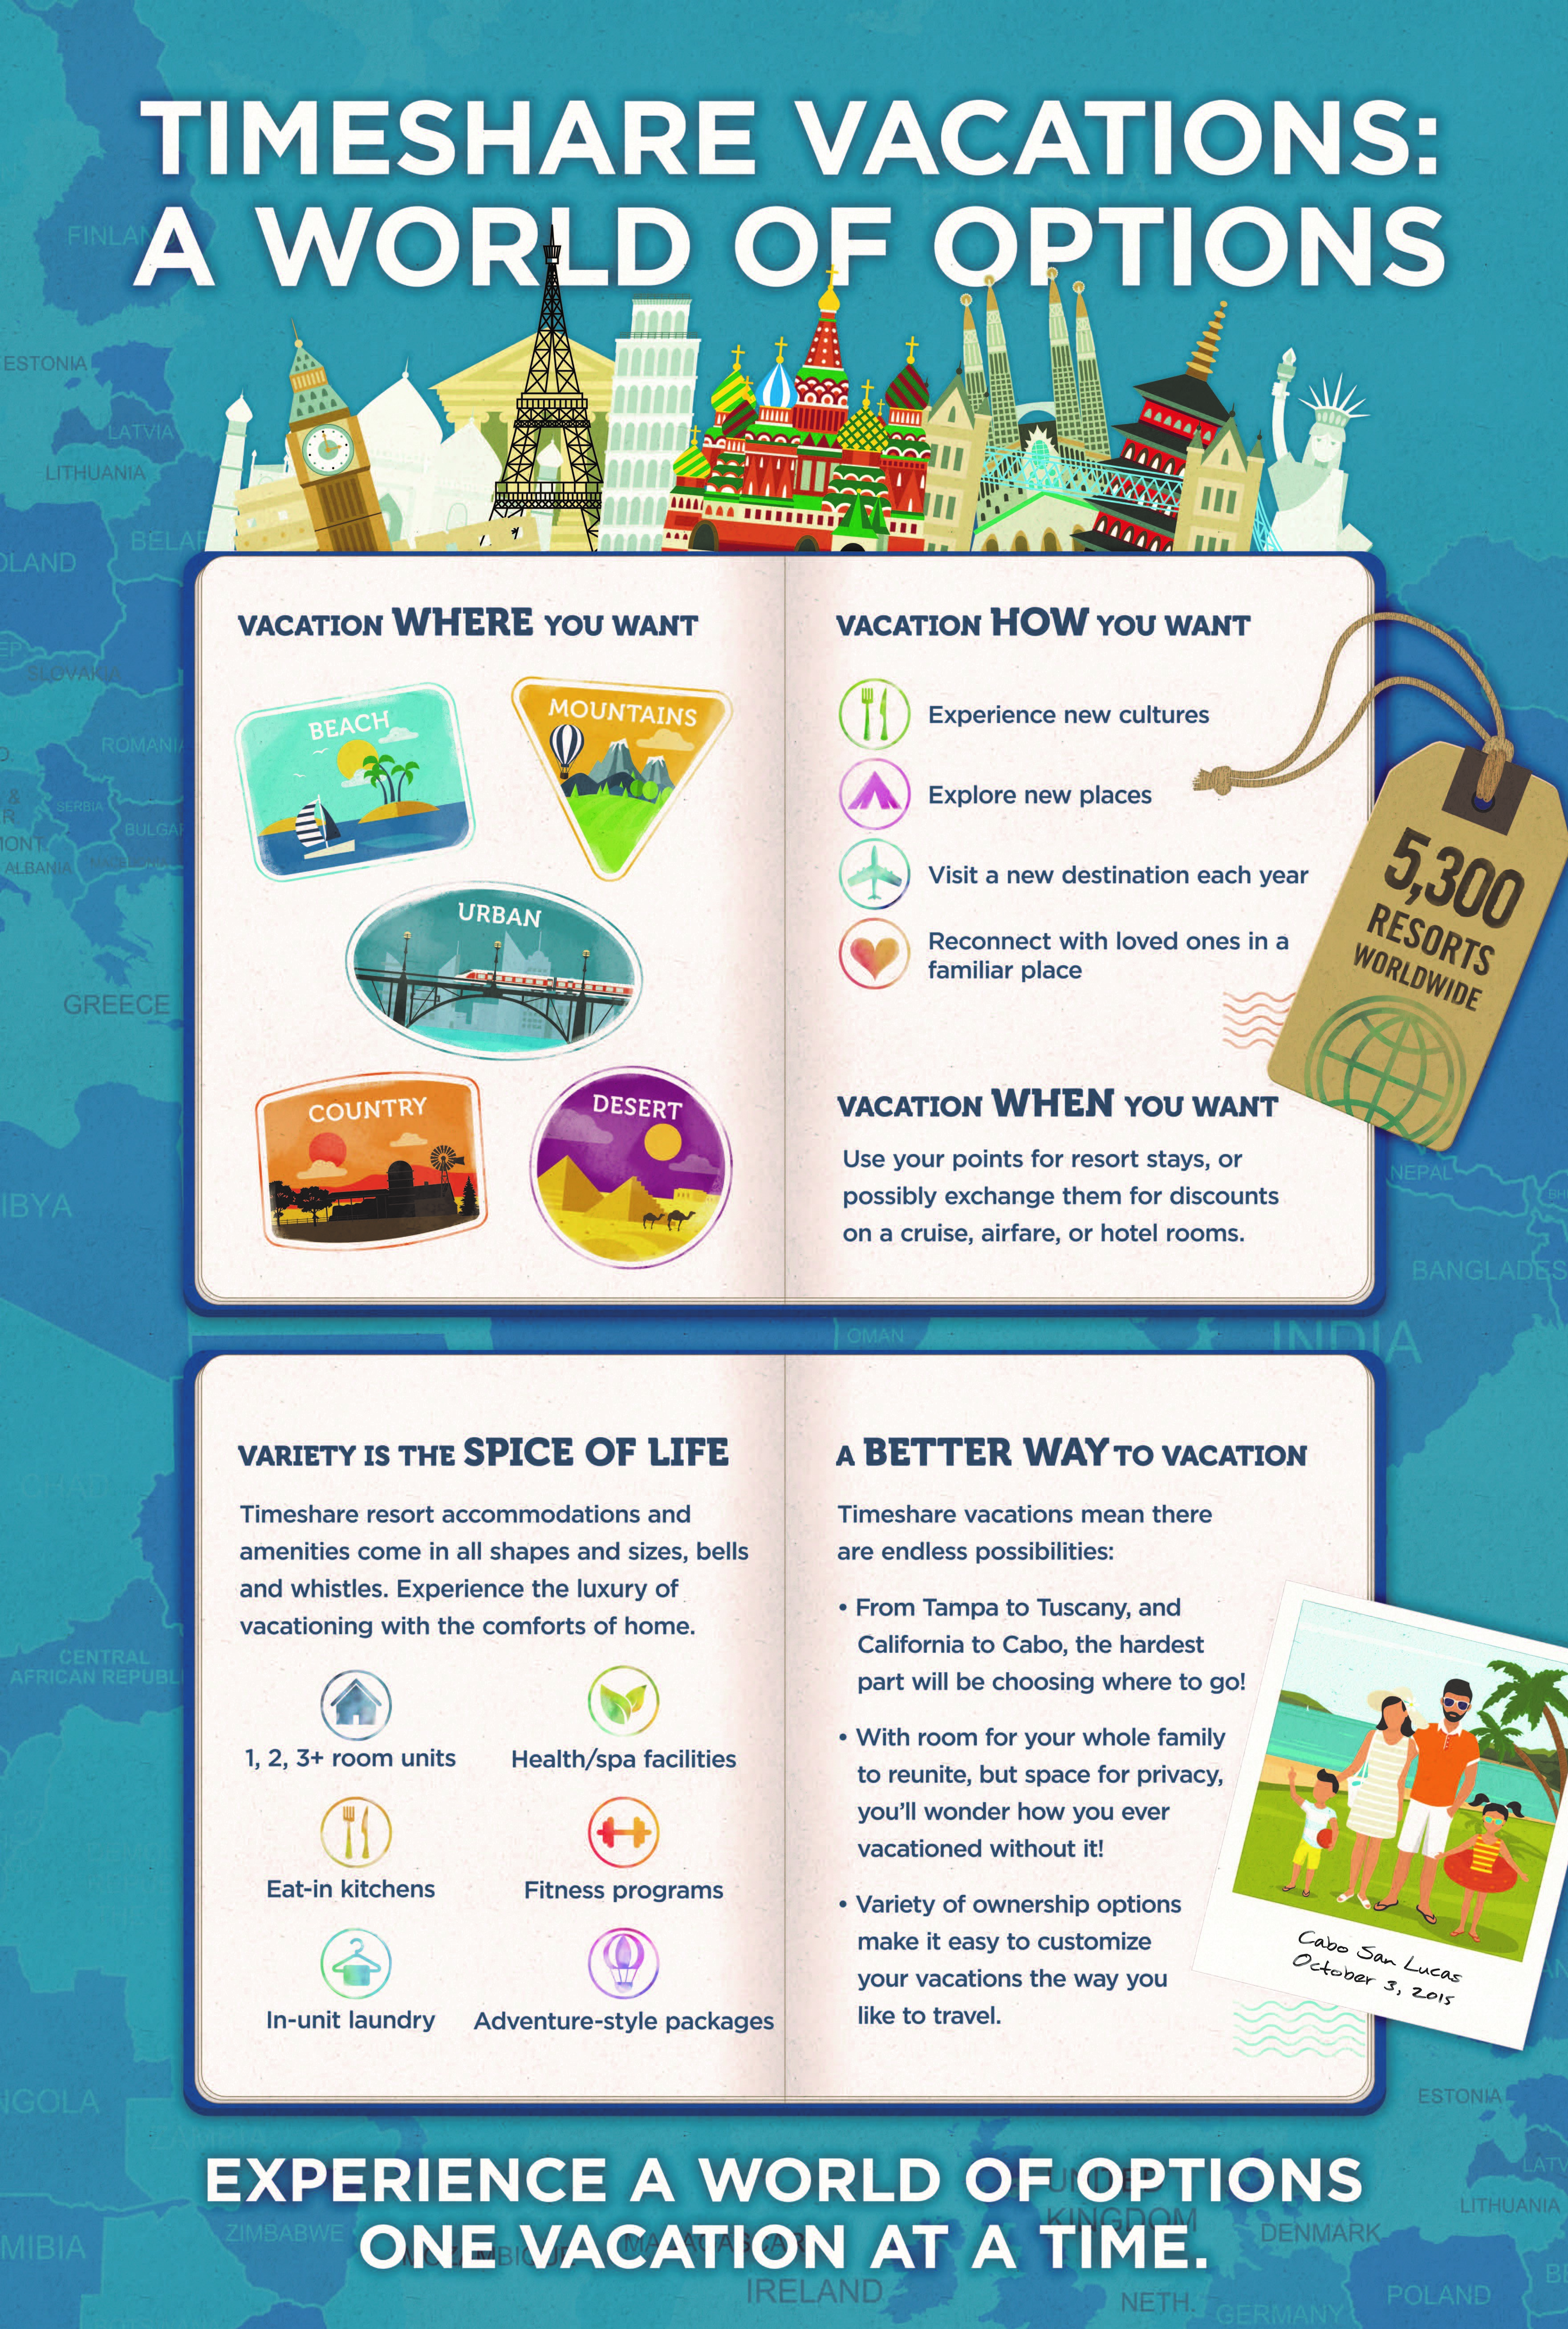 Timeshare Vacation: A World of Options Infographic